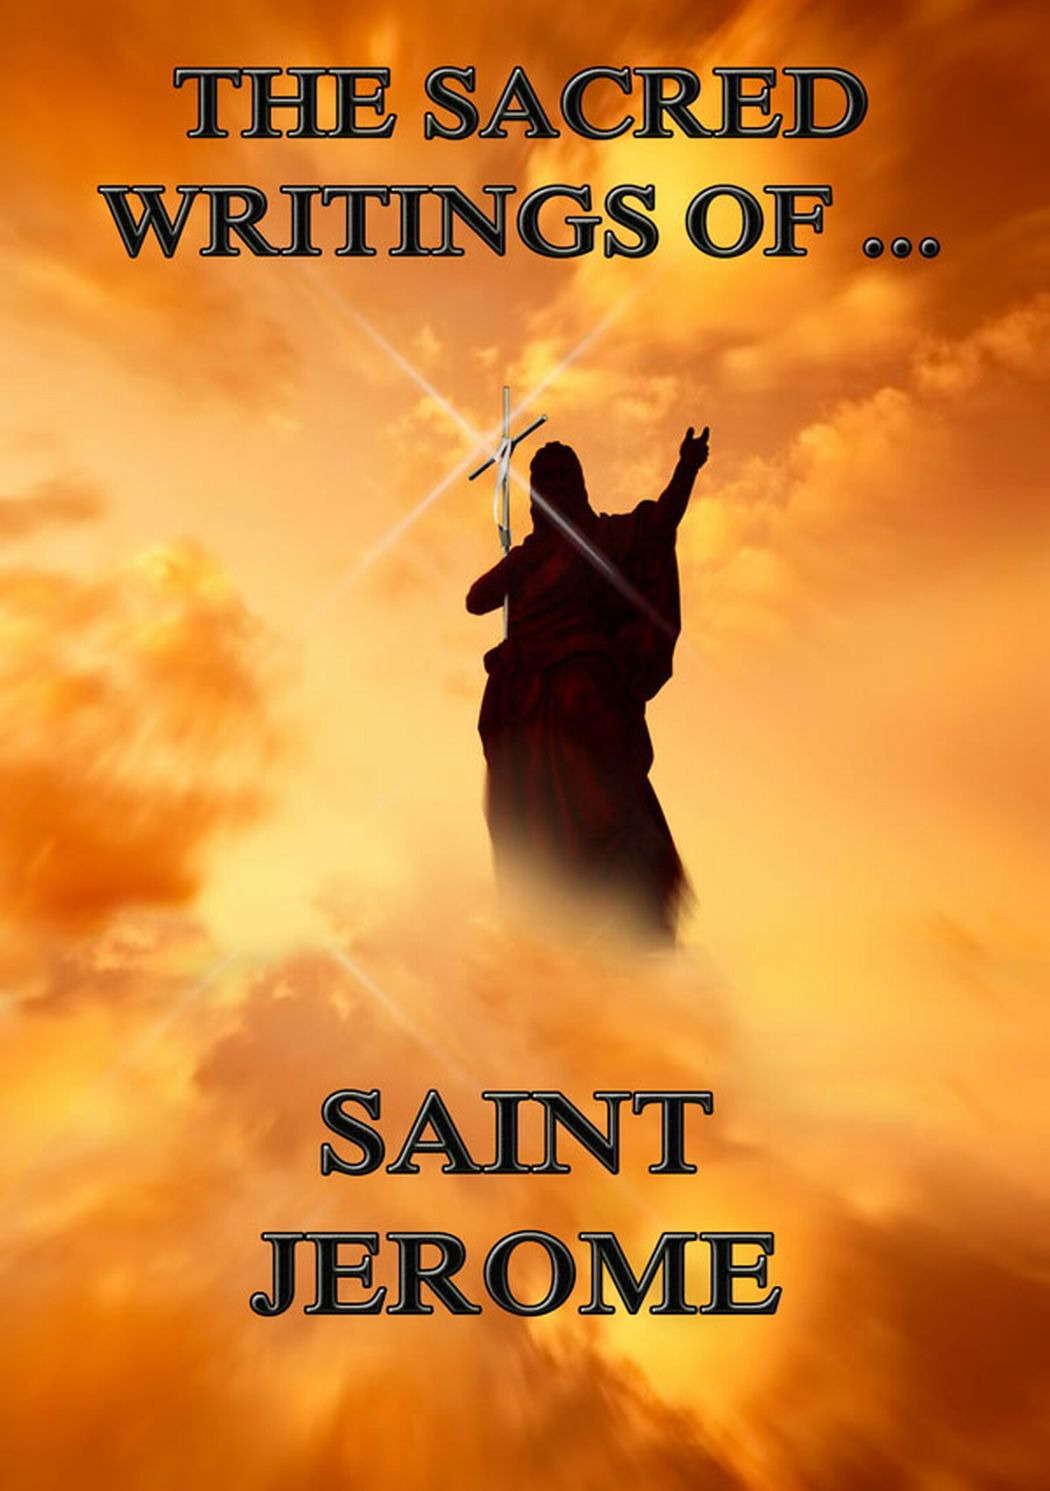 Saint Jerome The Sacred Writings of Saint Jerome jerome k jerome the second thoughts of an idle fellow